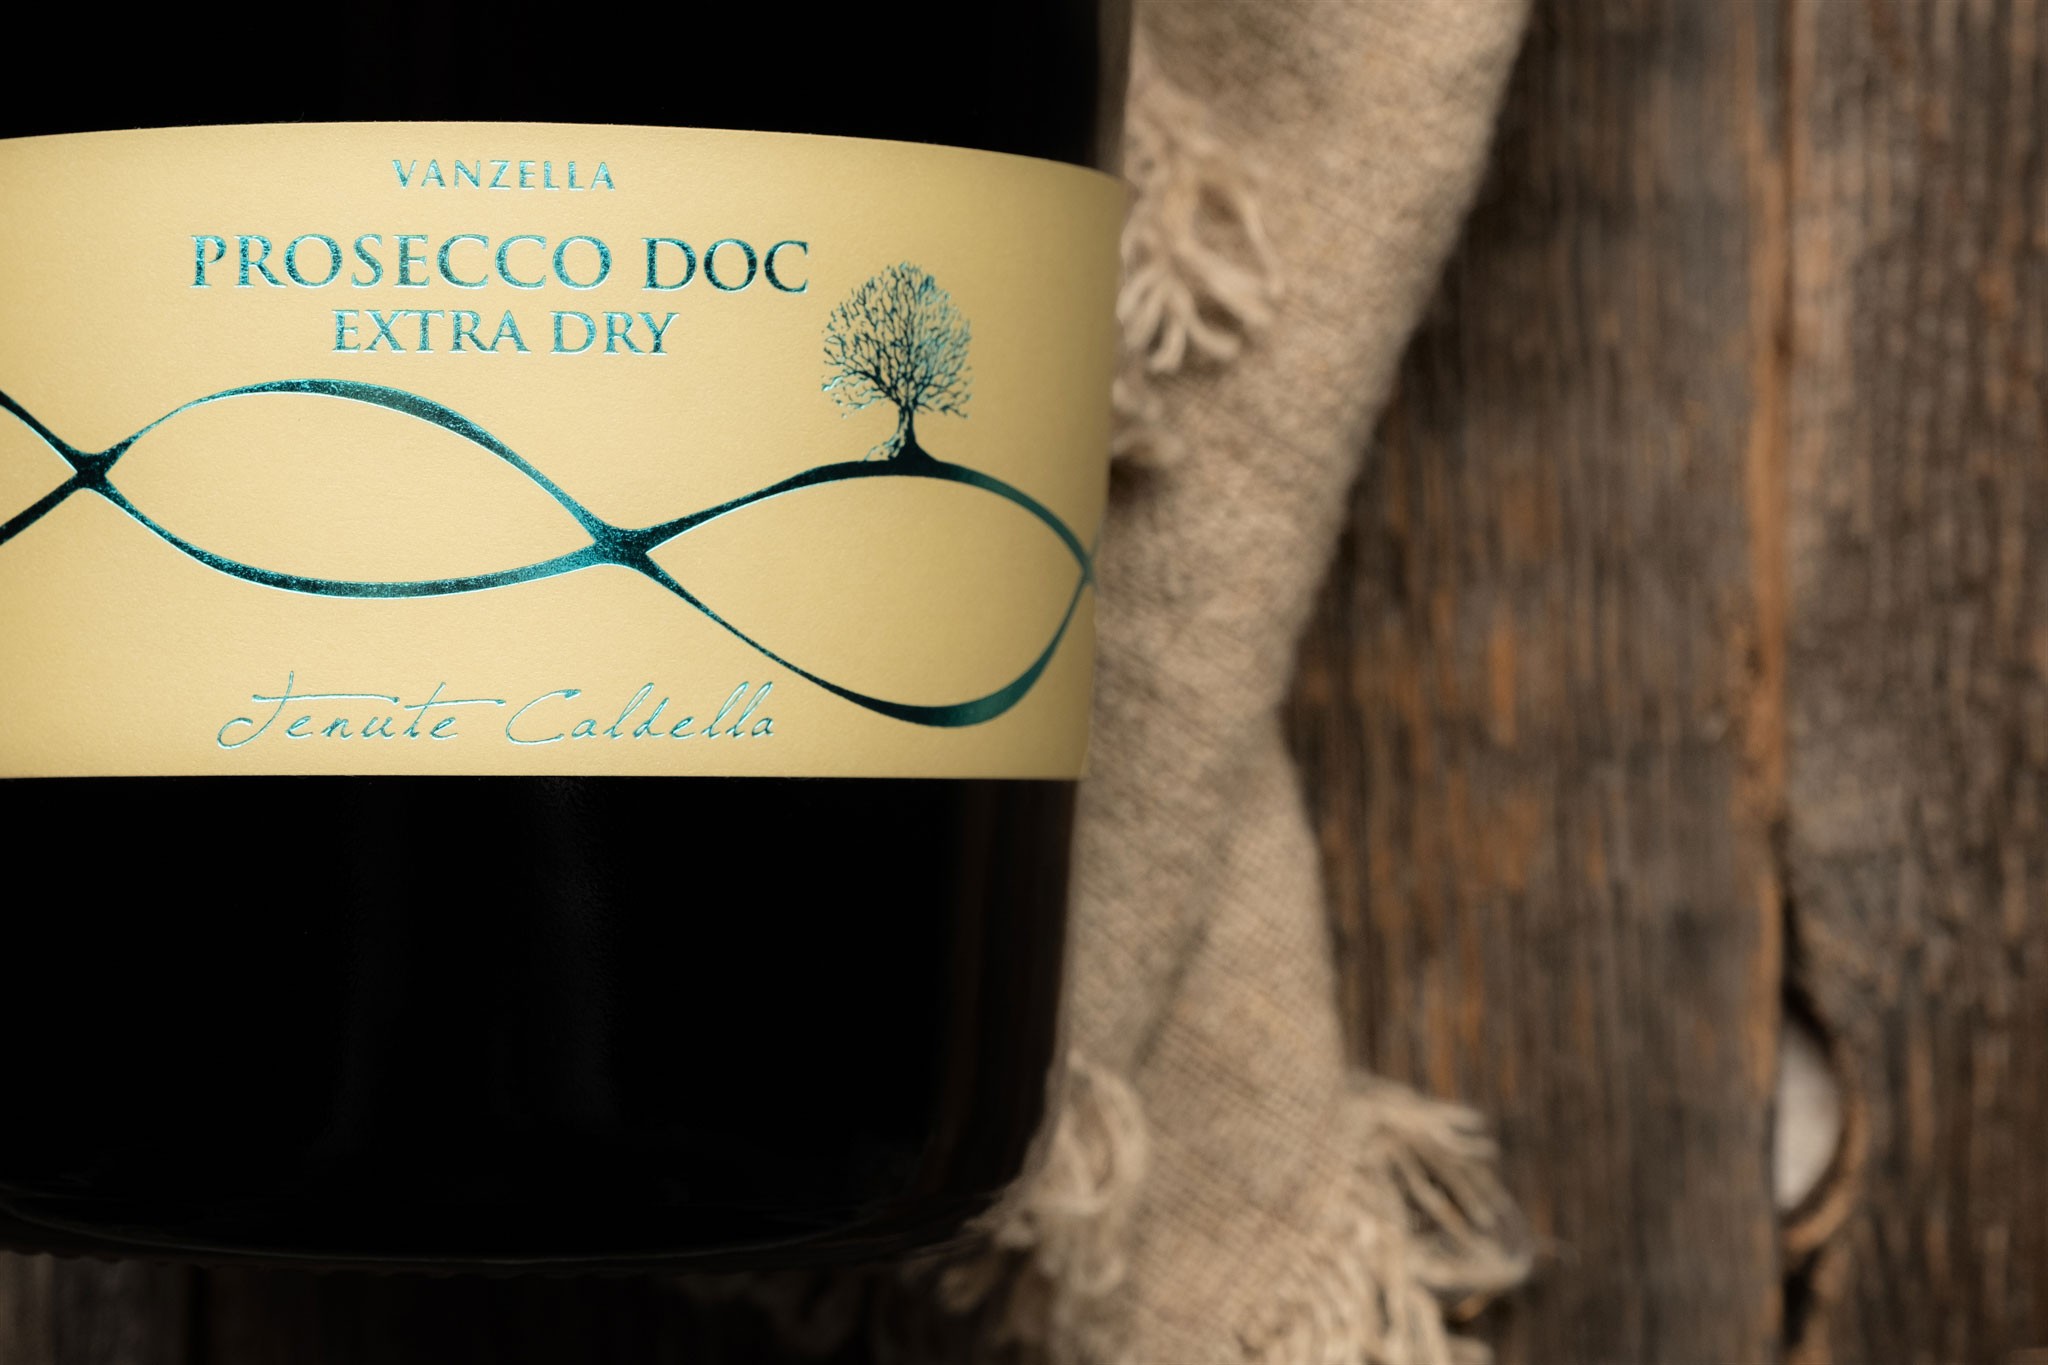 Prosecco Extra Dry detail